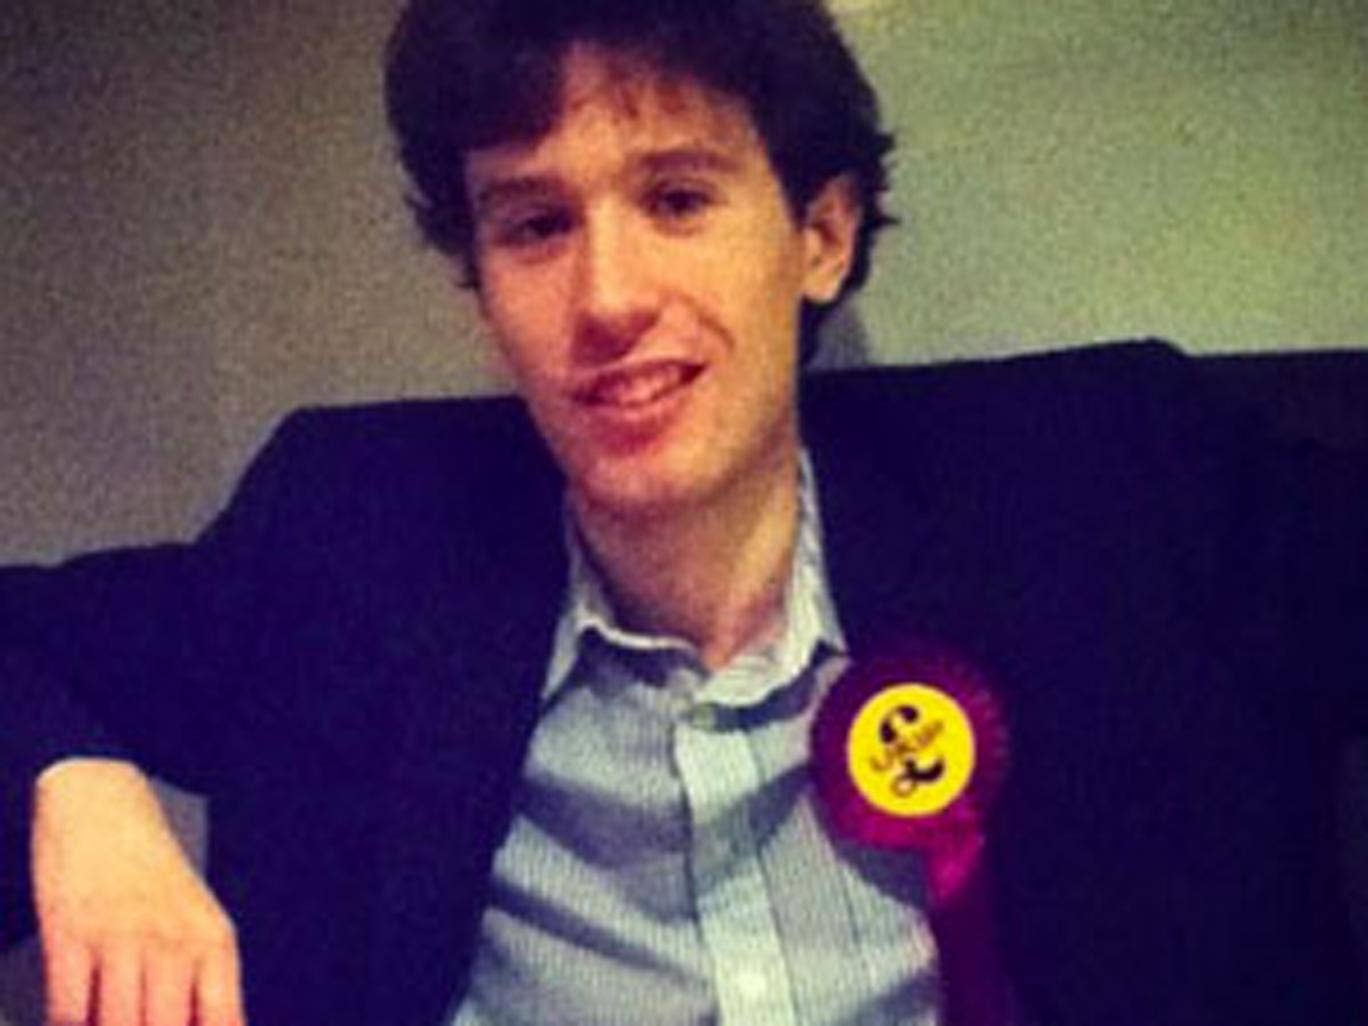 Olly Neville who was appointed as chairman of Young Independence at the end of last year